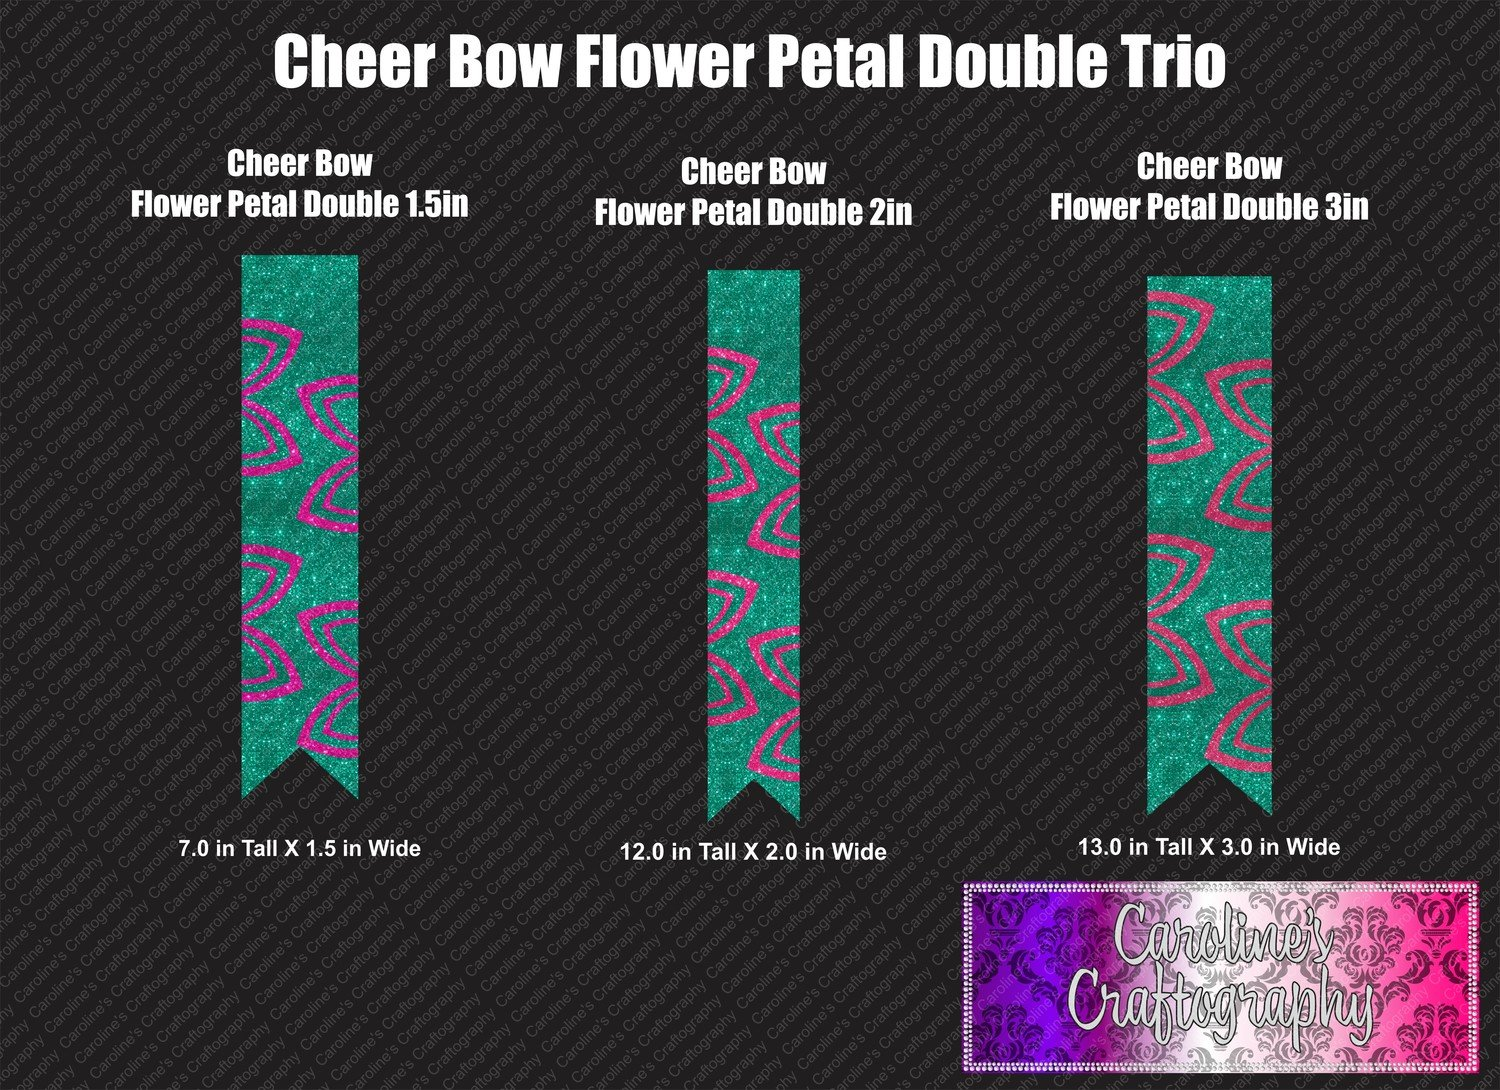 Flower Petal Double Cheer Bow Trio